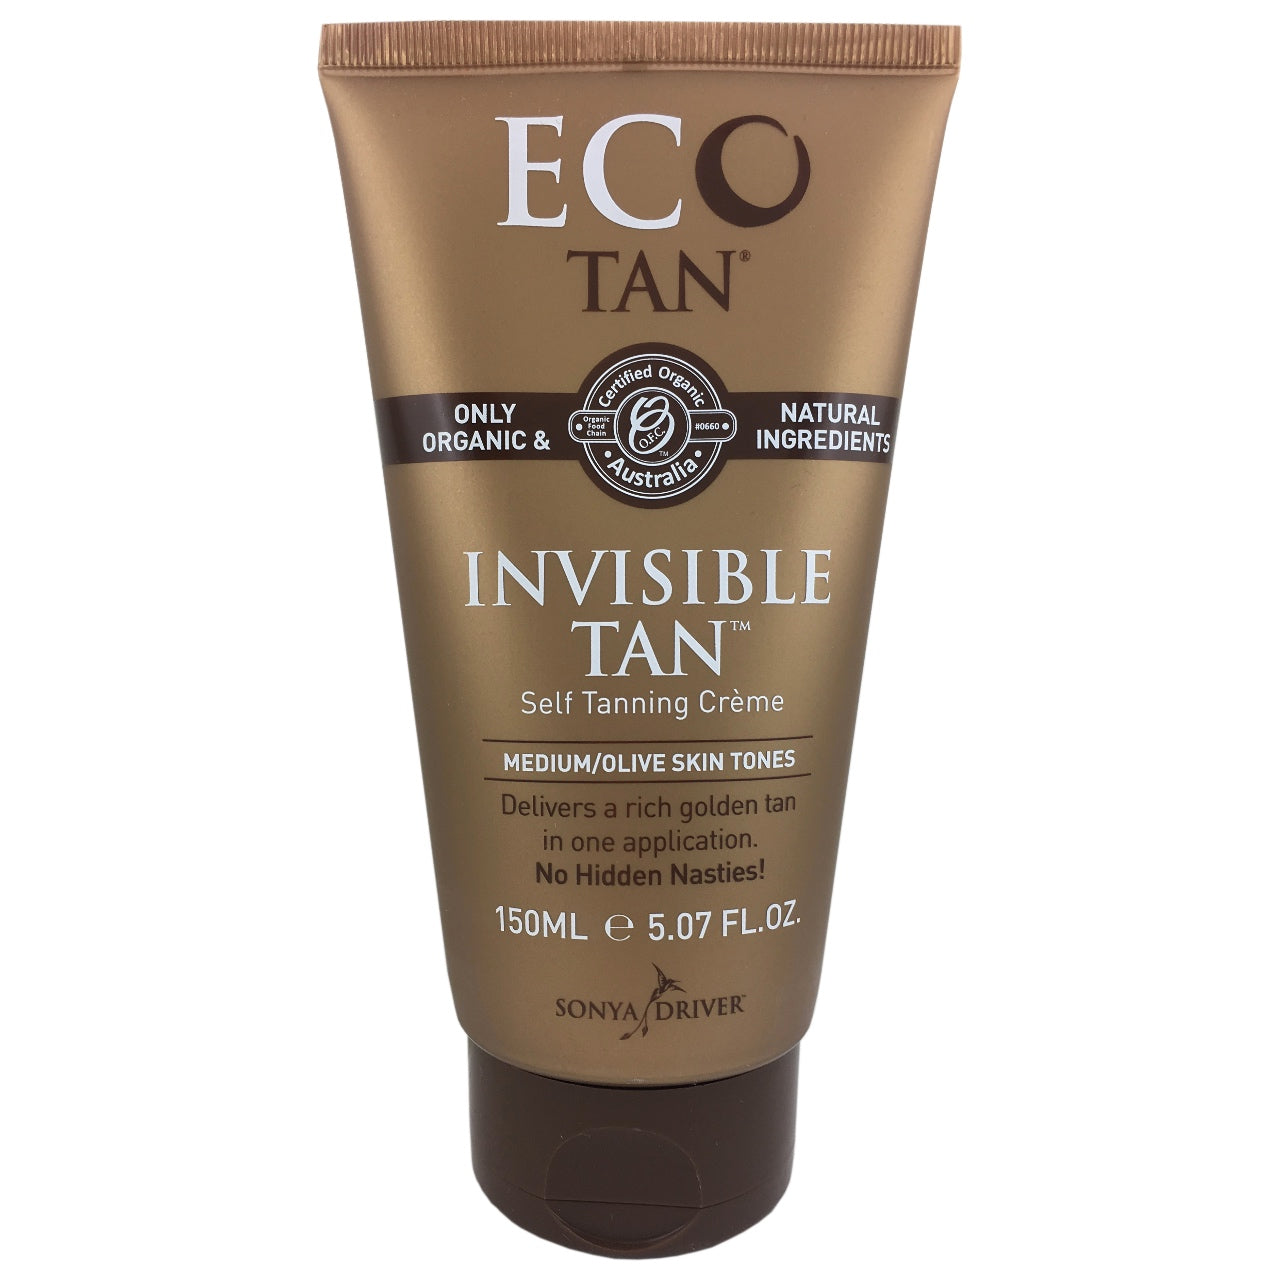 Eco Tan Invisible Tan